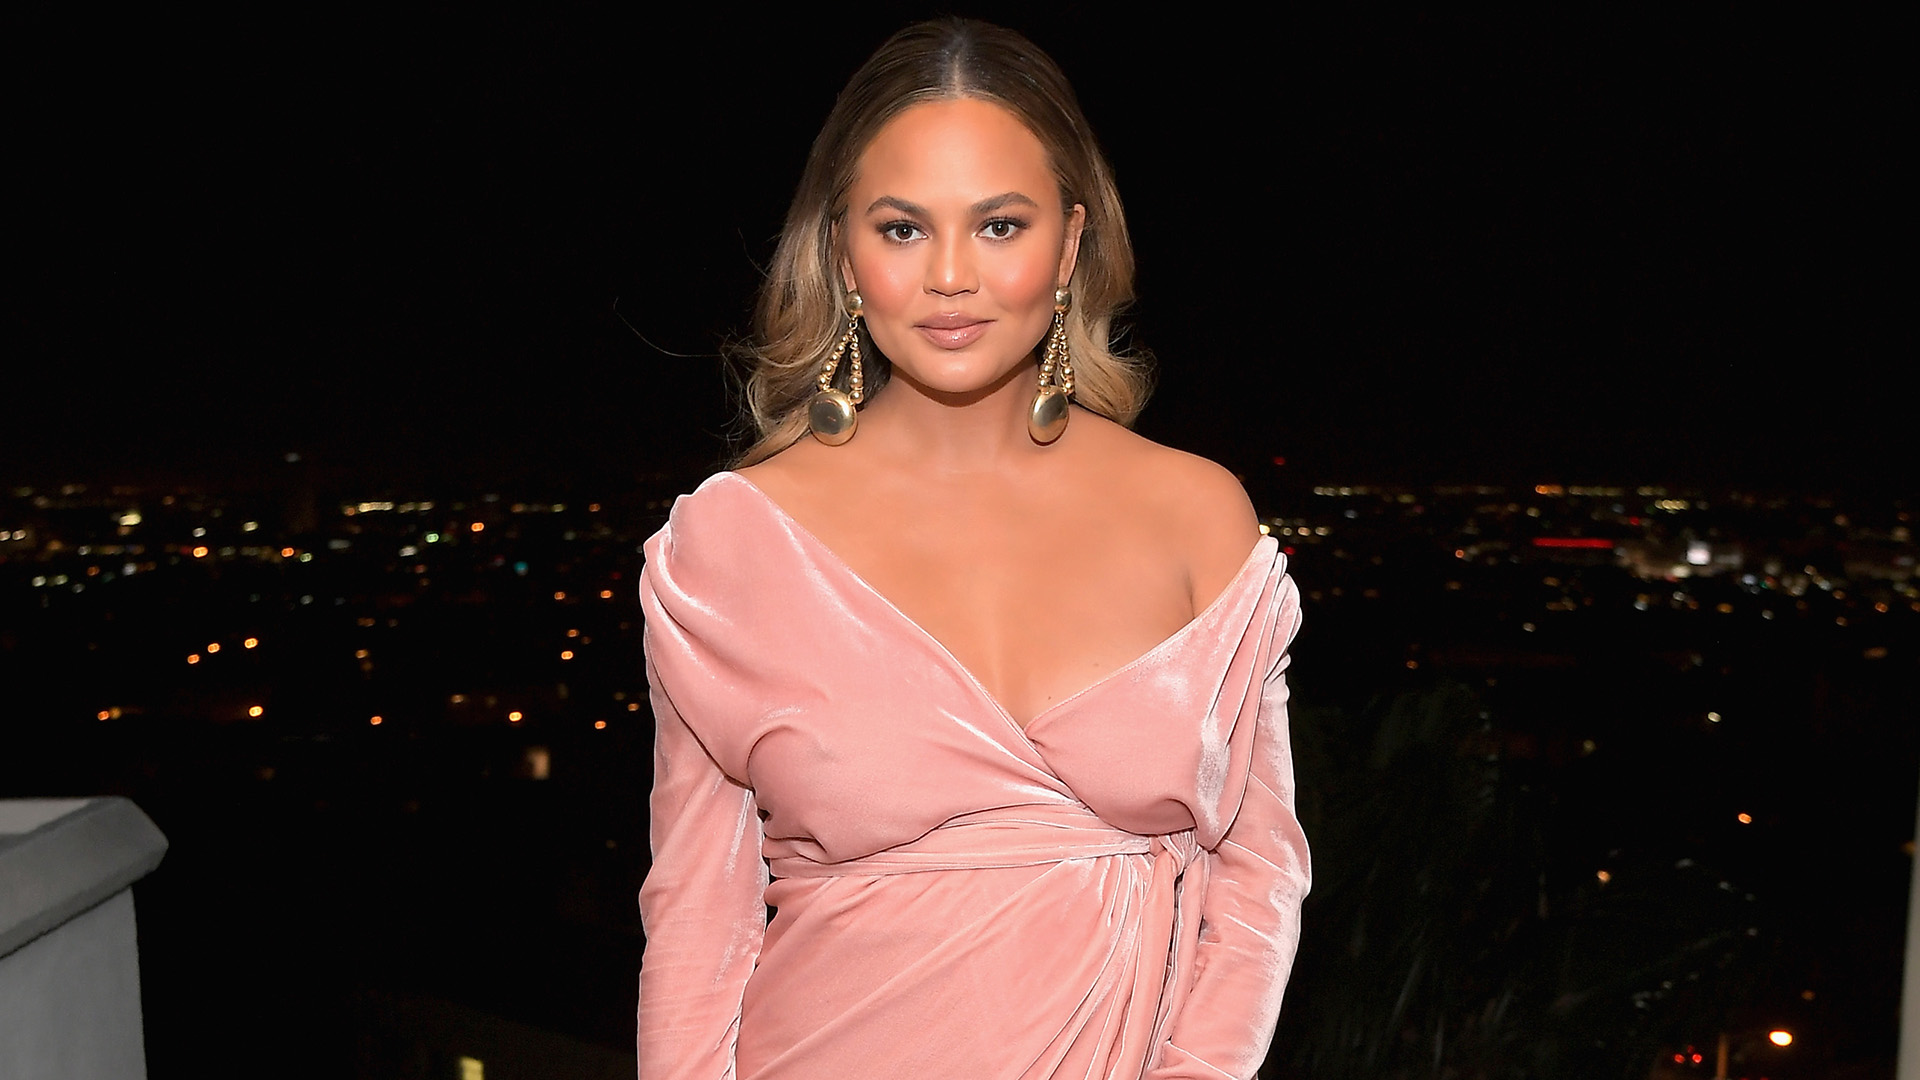 Chrissy Teigen Proudly Shows Off Lopsided Boobs from One-Sided Breastfeeding